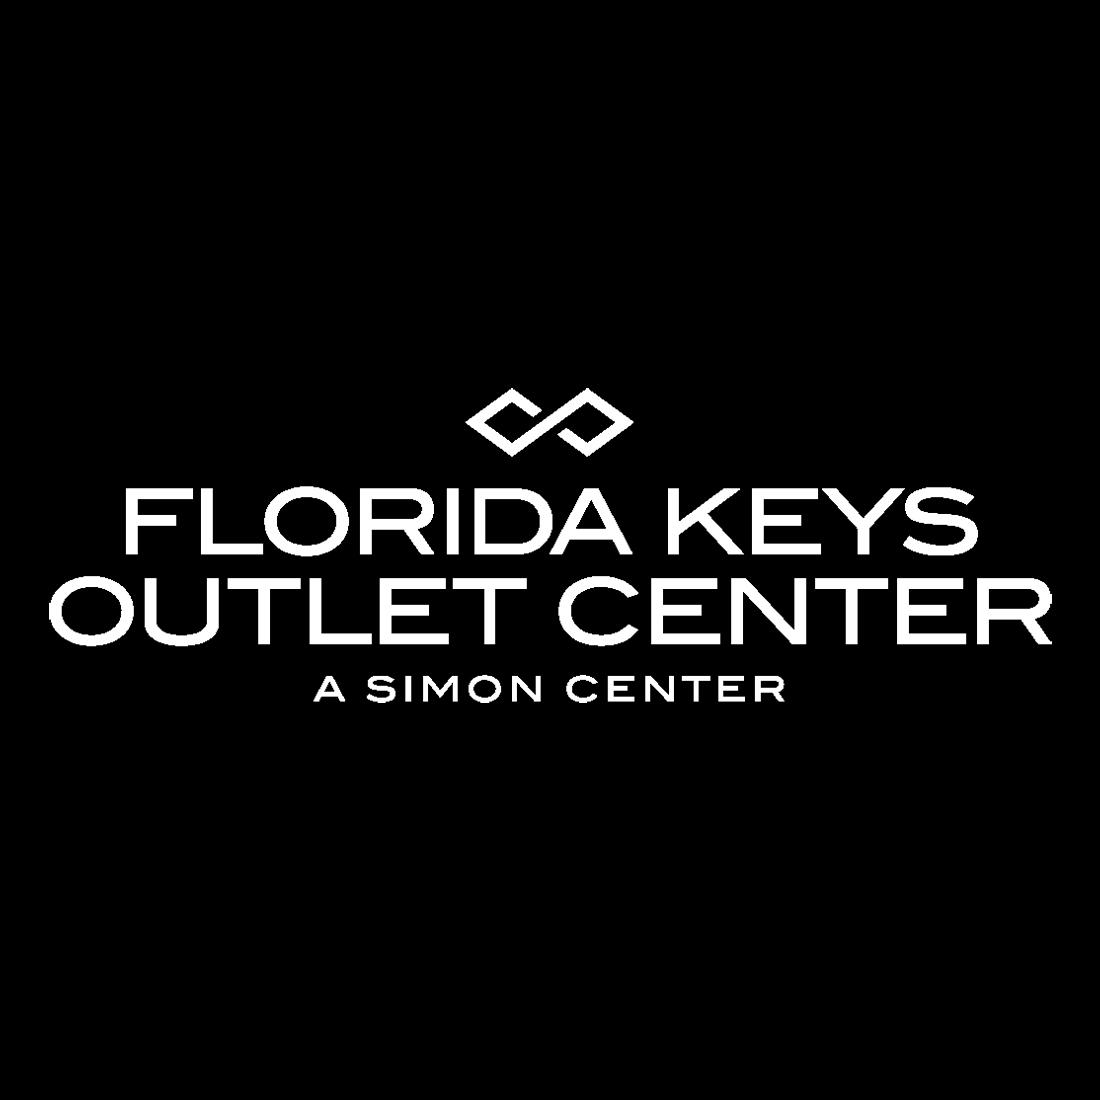 Florida Keys Outlet Center